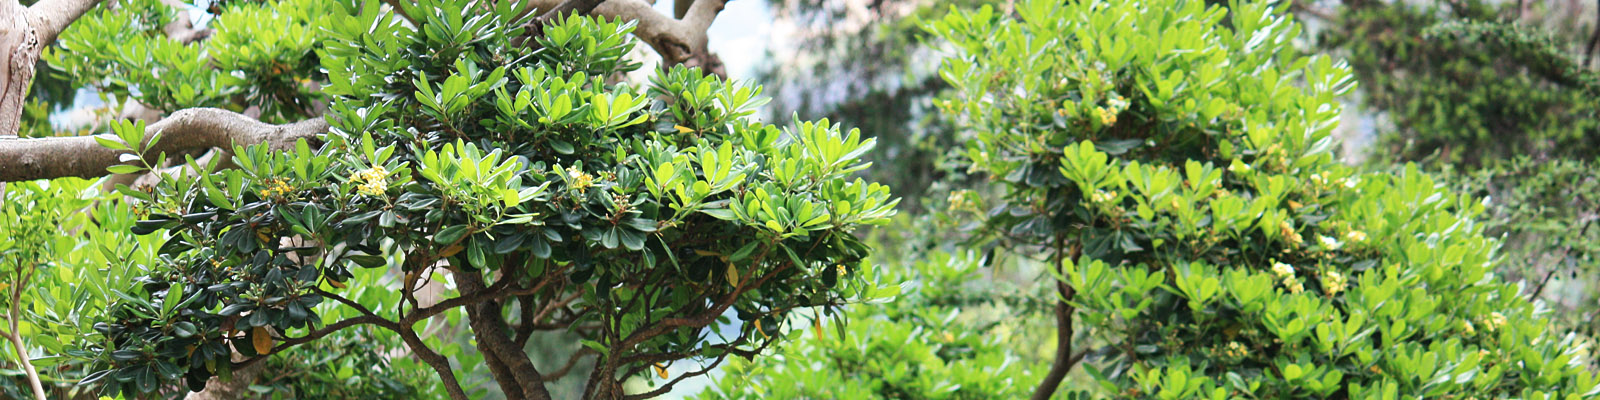 Green Parrot Gardens | Topiary, Cloud Pruning and Garden Bonsais